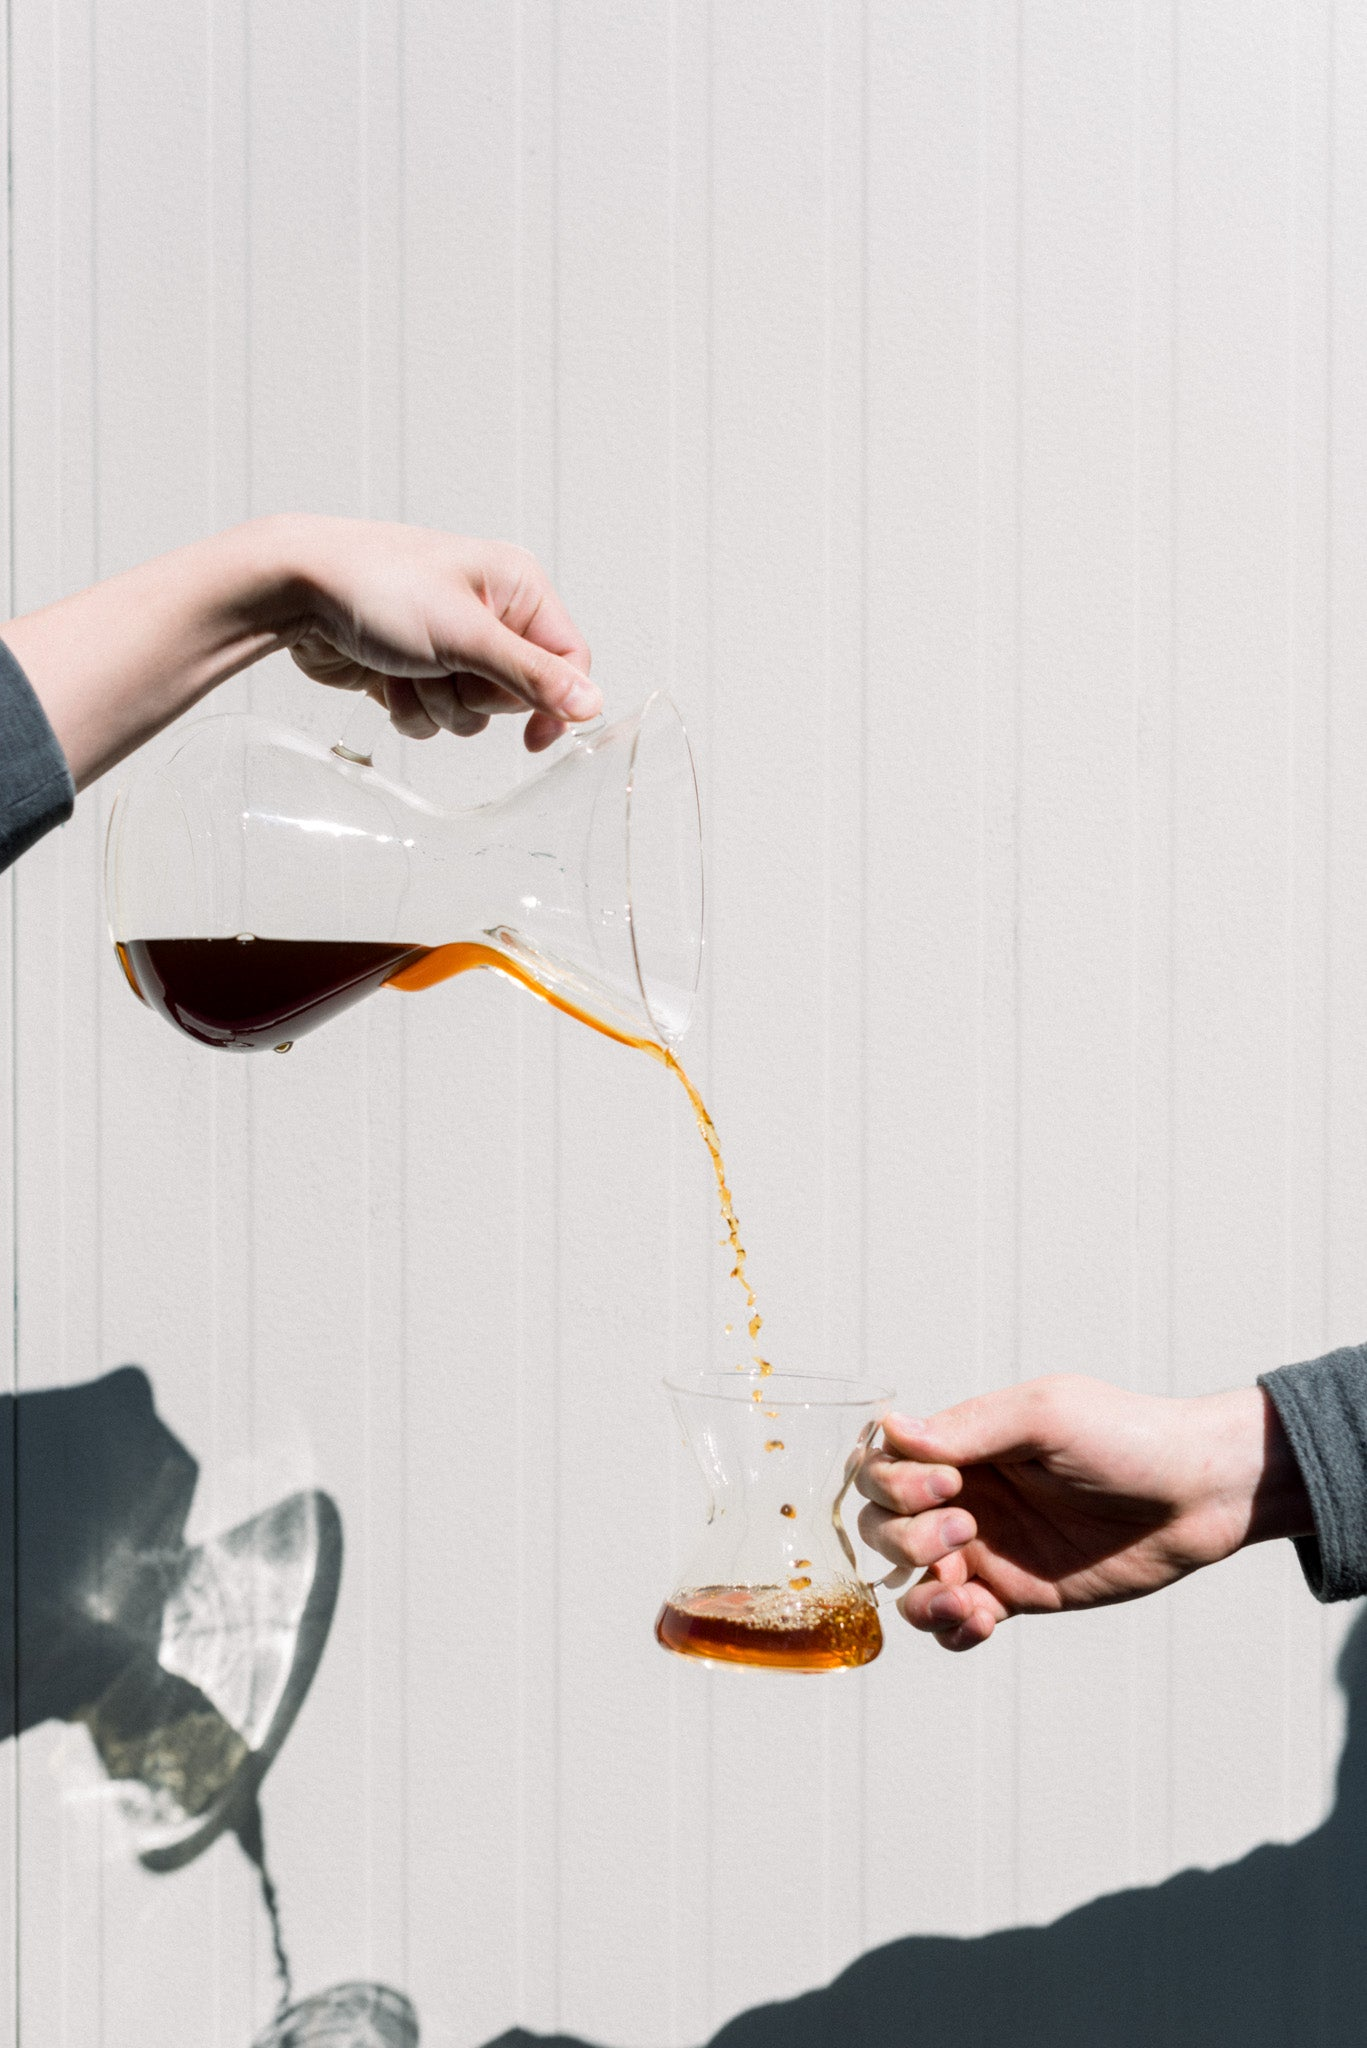 Coffee pouring from pitcher into smaller mug